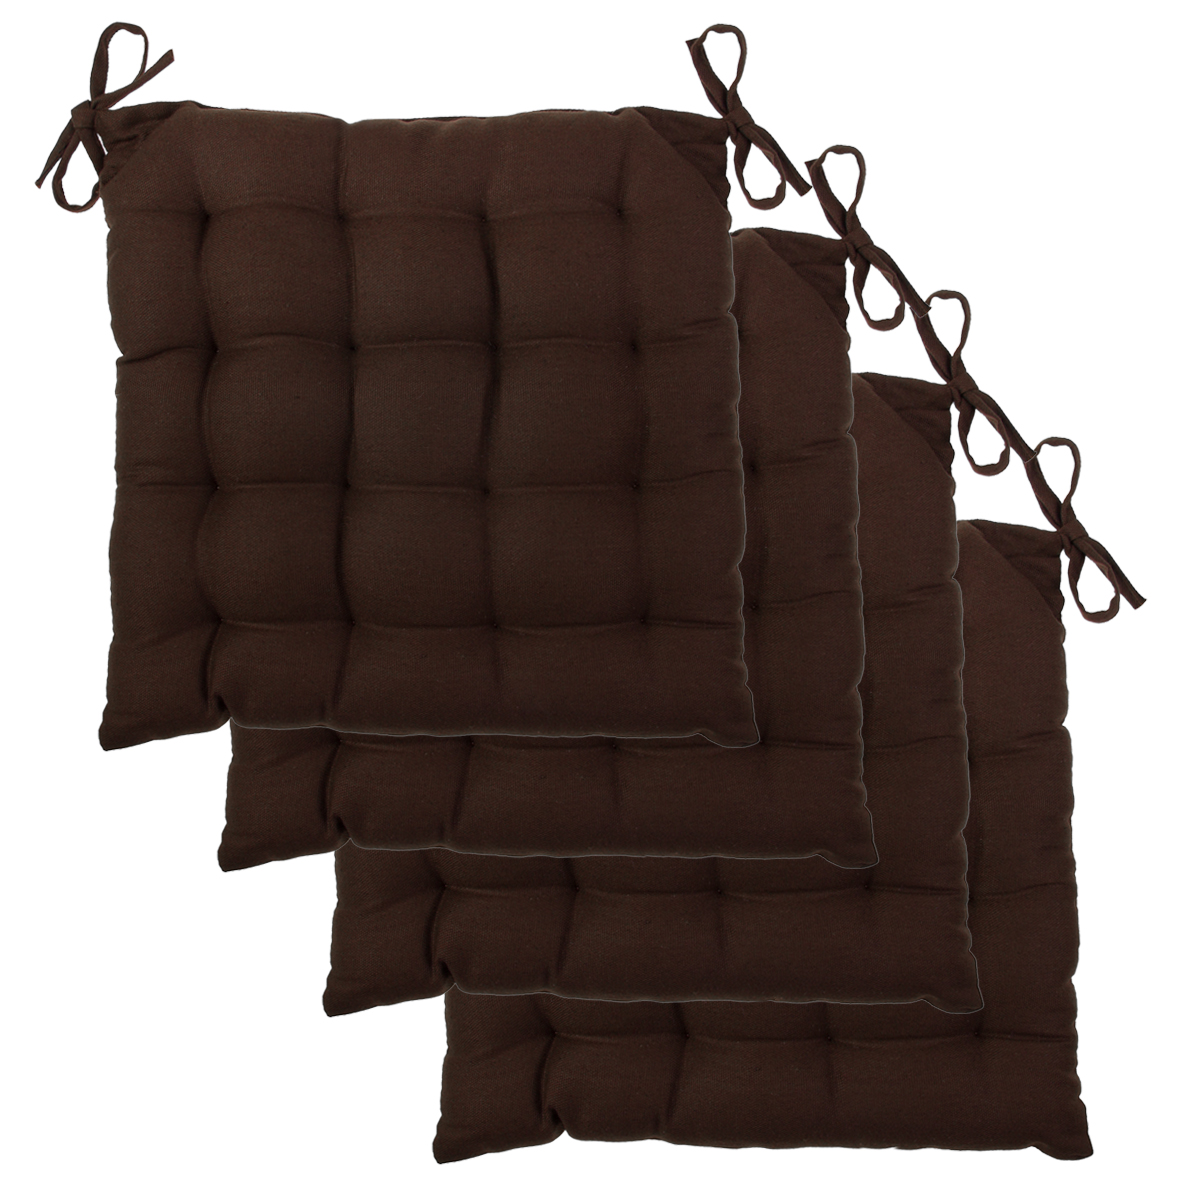 4pk Chair Pads Set Soft Tufted Cotton Canvas Padded Seat  : z236q2brown1 from www.ebay.ca size 1200 x 1200 jpeg 654kB